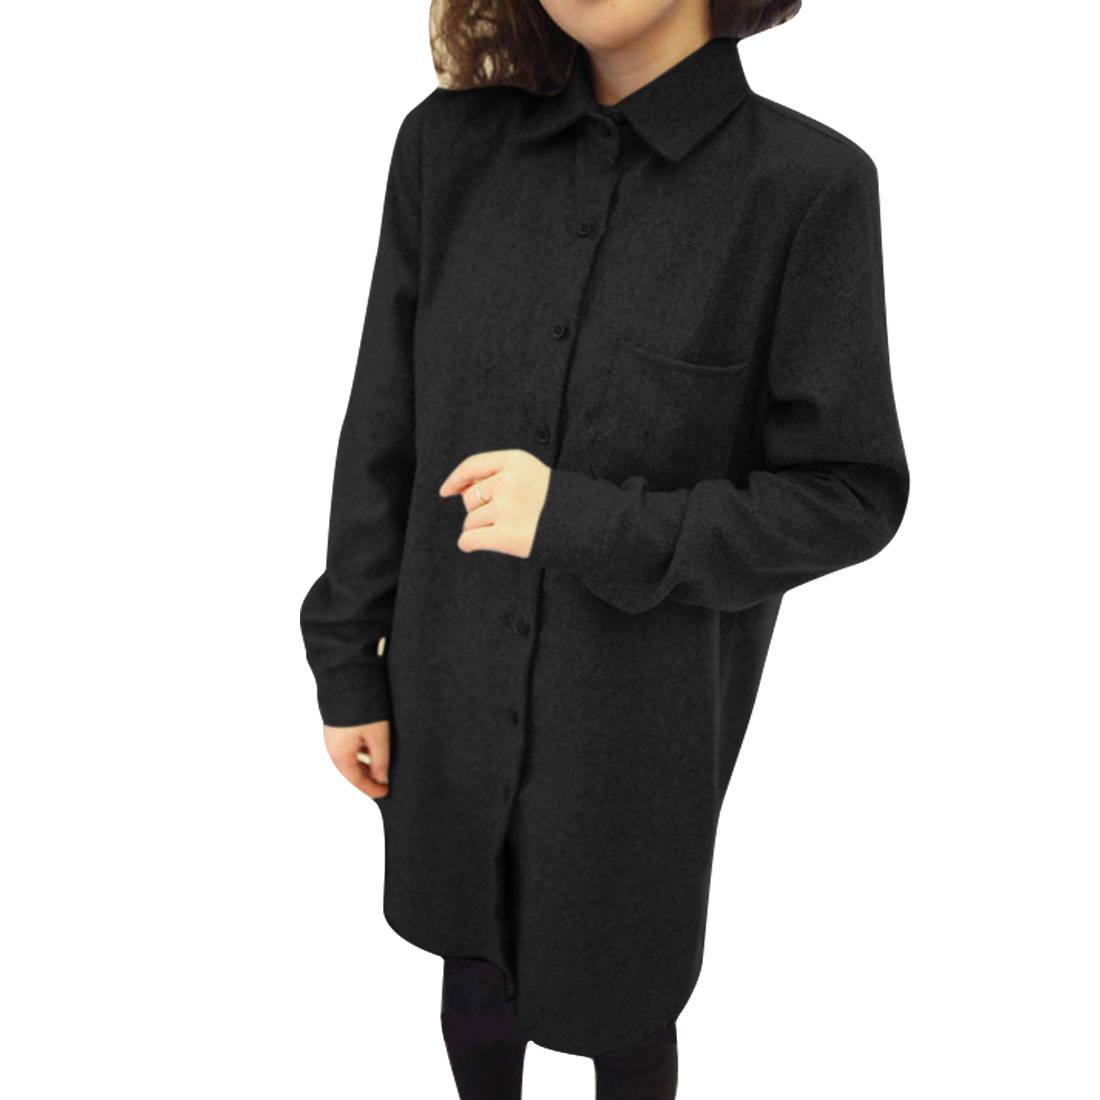 Women Button Up Long Sleeve Chest Pocket Shirt Black S